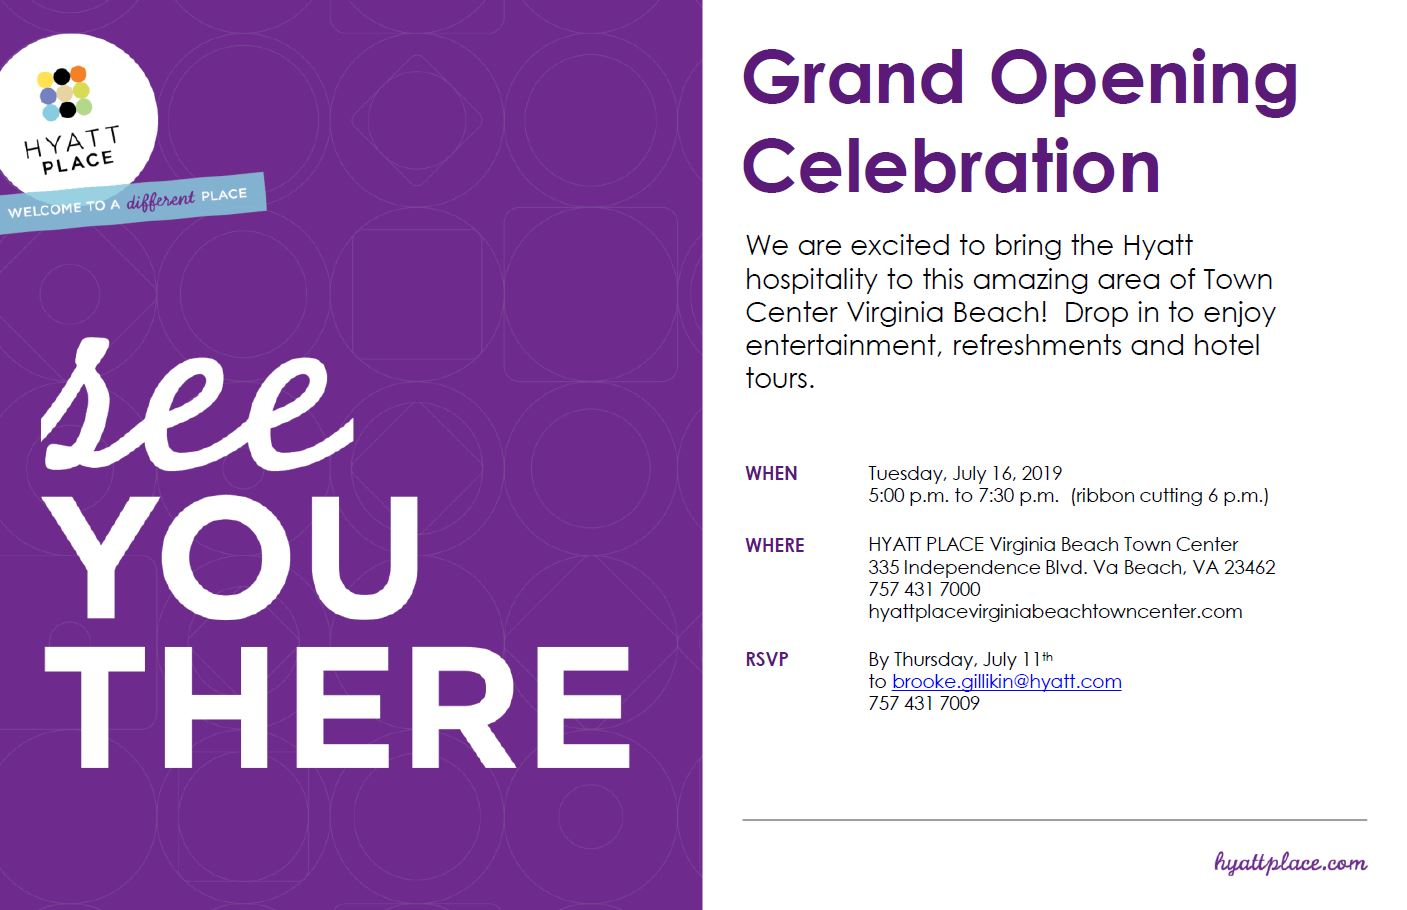 HR Chamber members are invited to our Grand Opening Celebration